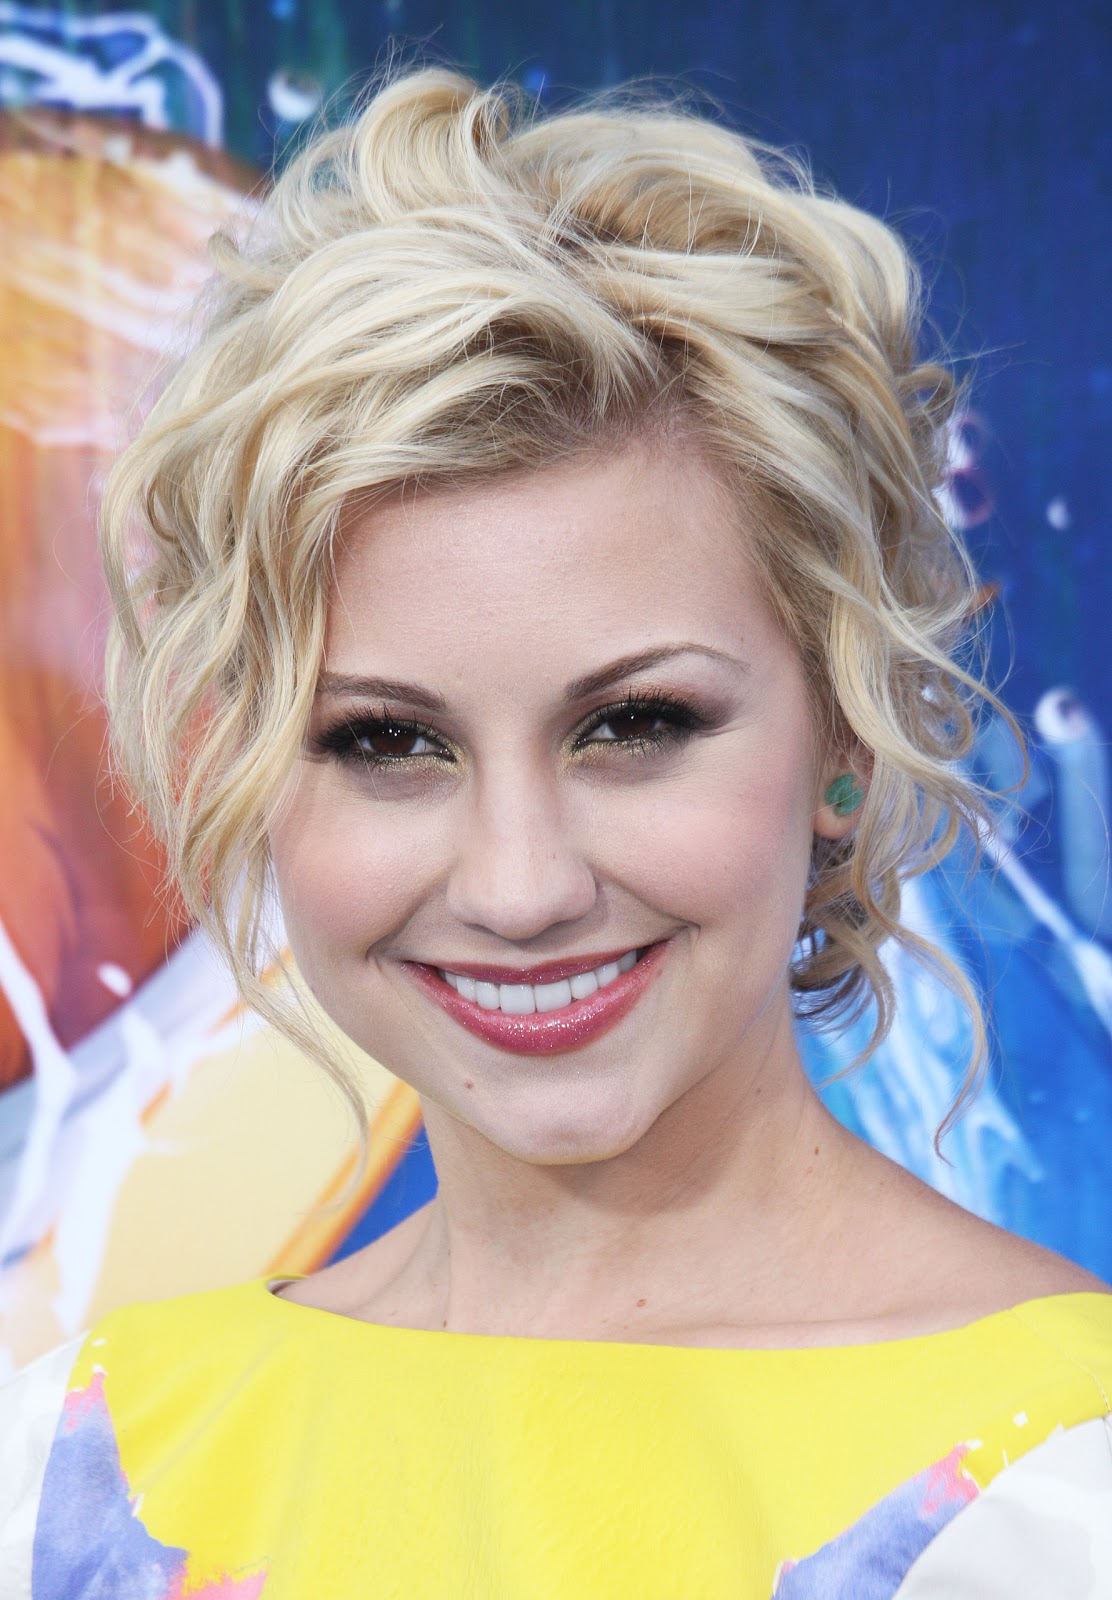 chelsea hair kane short staub hairstyles loose formal ponytail haircuts cute updos actress pixie married stylebistro haircut hairstyle lookbook disney